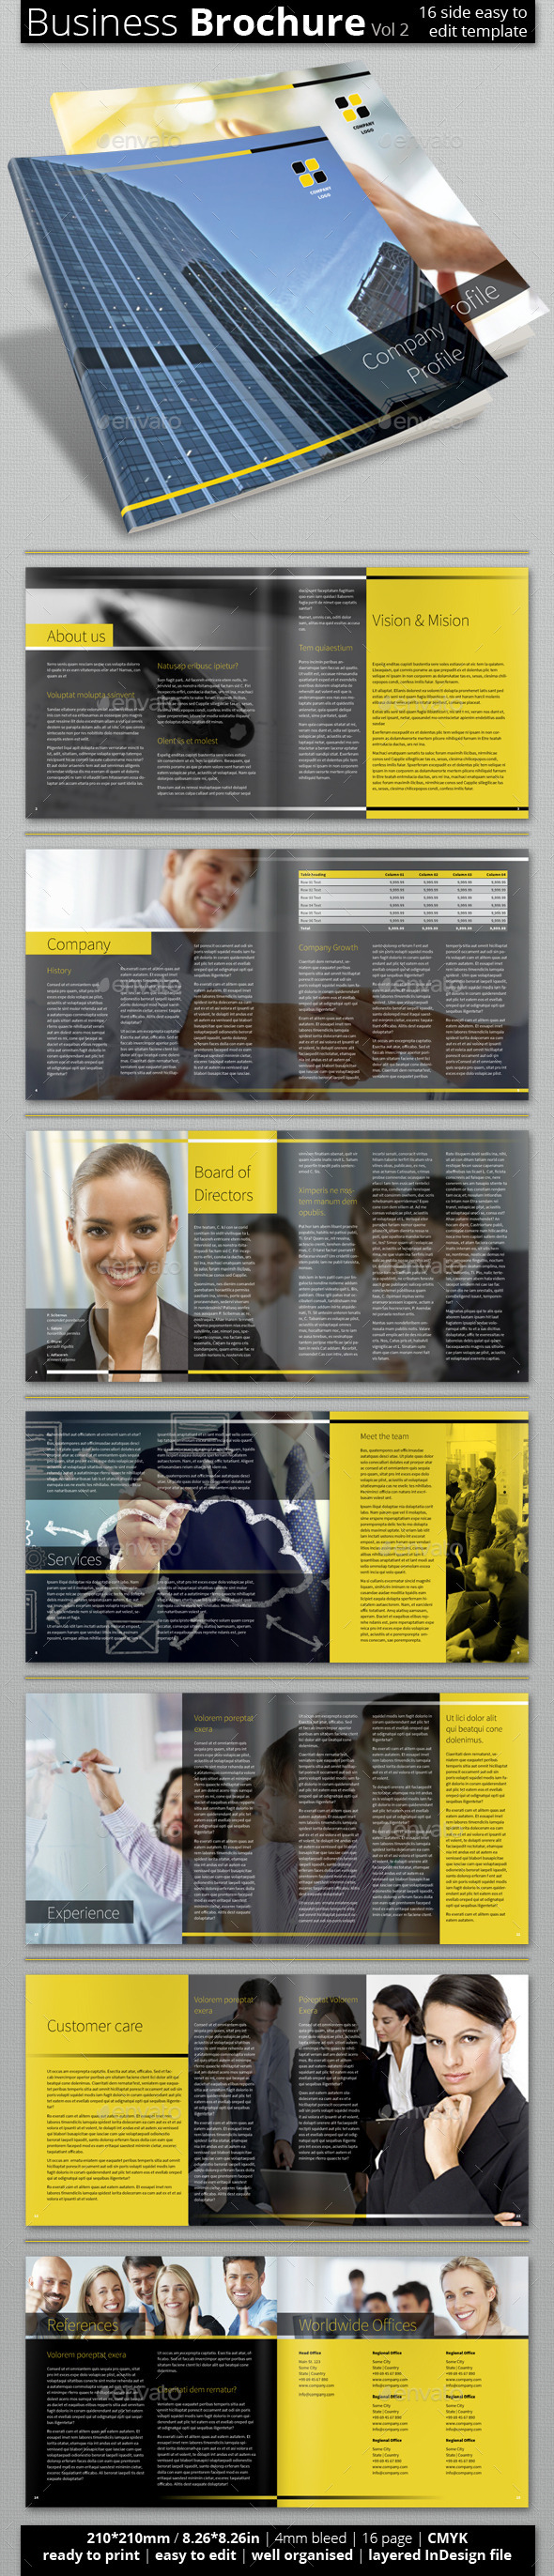 Multipurpose Business Brochure (Vol 2.) - Corporate Brochures